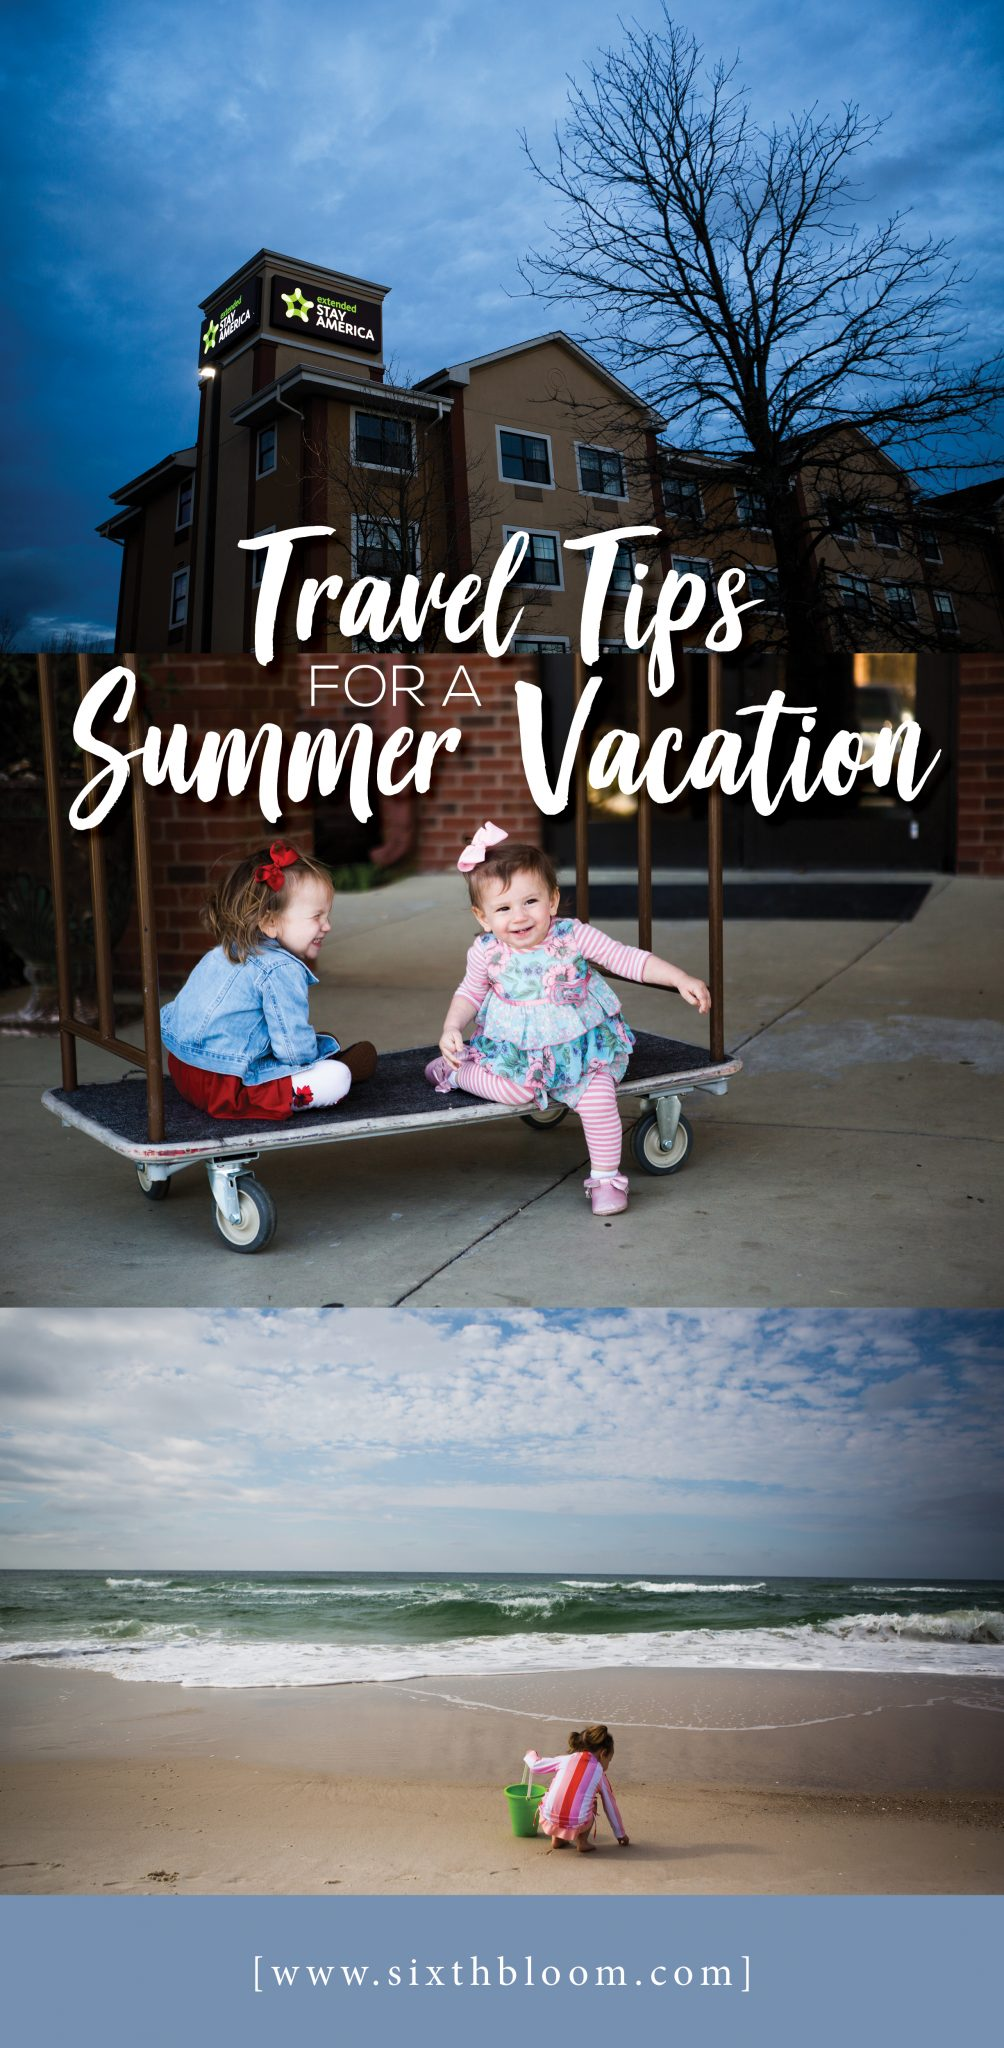 Travel Tips for Summer Vacation